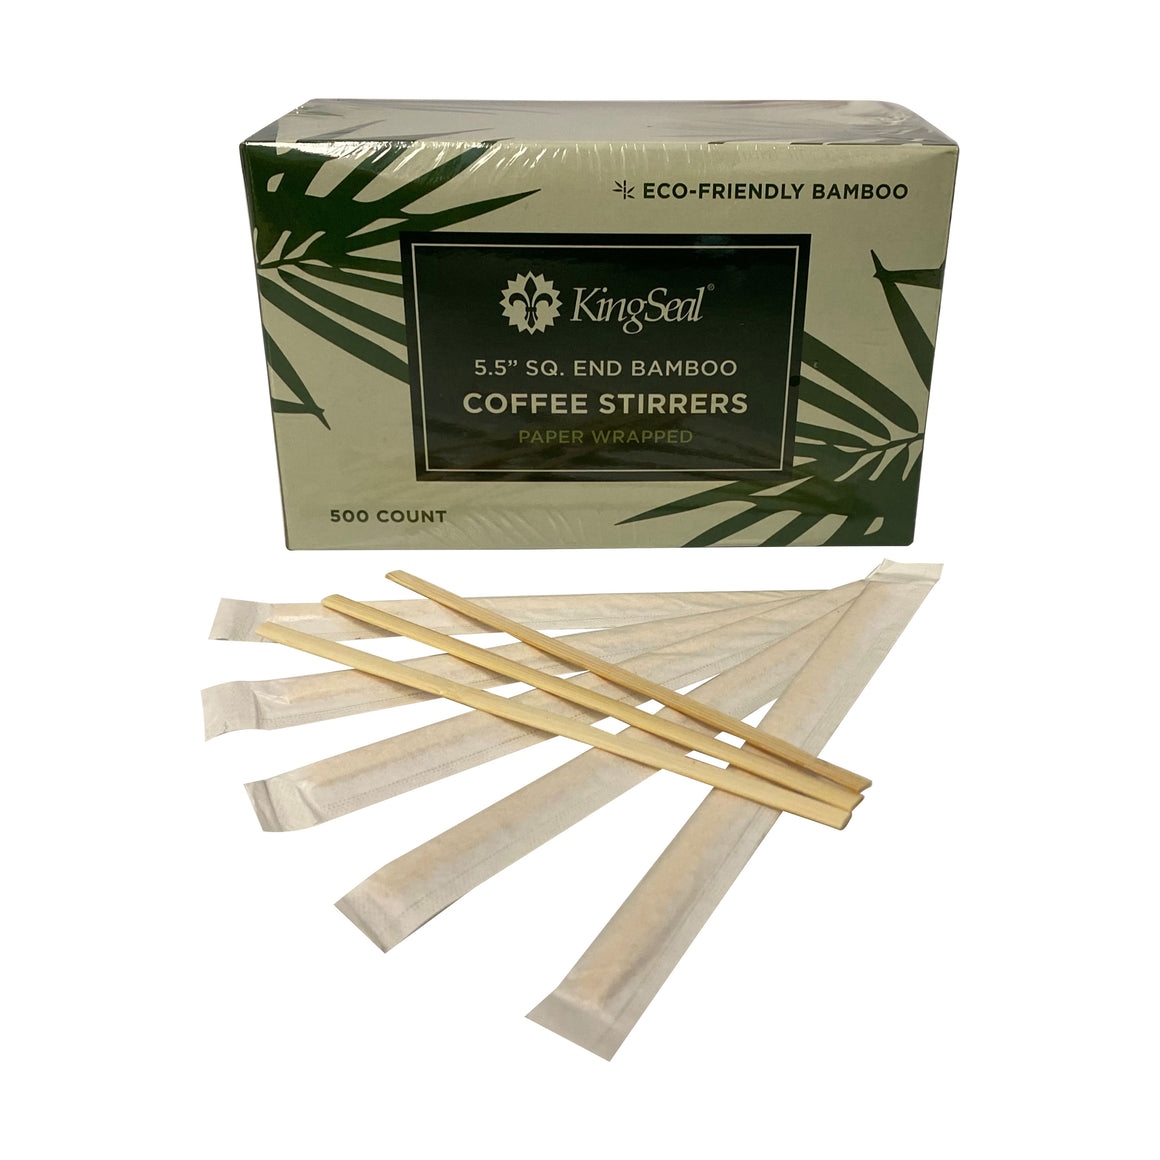 KingSeal Indiv. Paper Wrapped Bamboo Coffee Beverage Stirrers, Square End - 5.5 Inches, 100% Renewable and Biodegradable